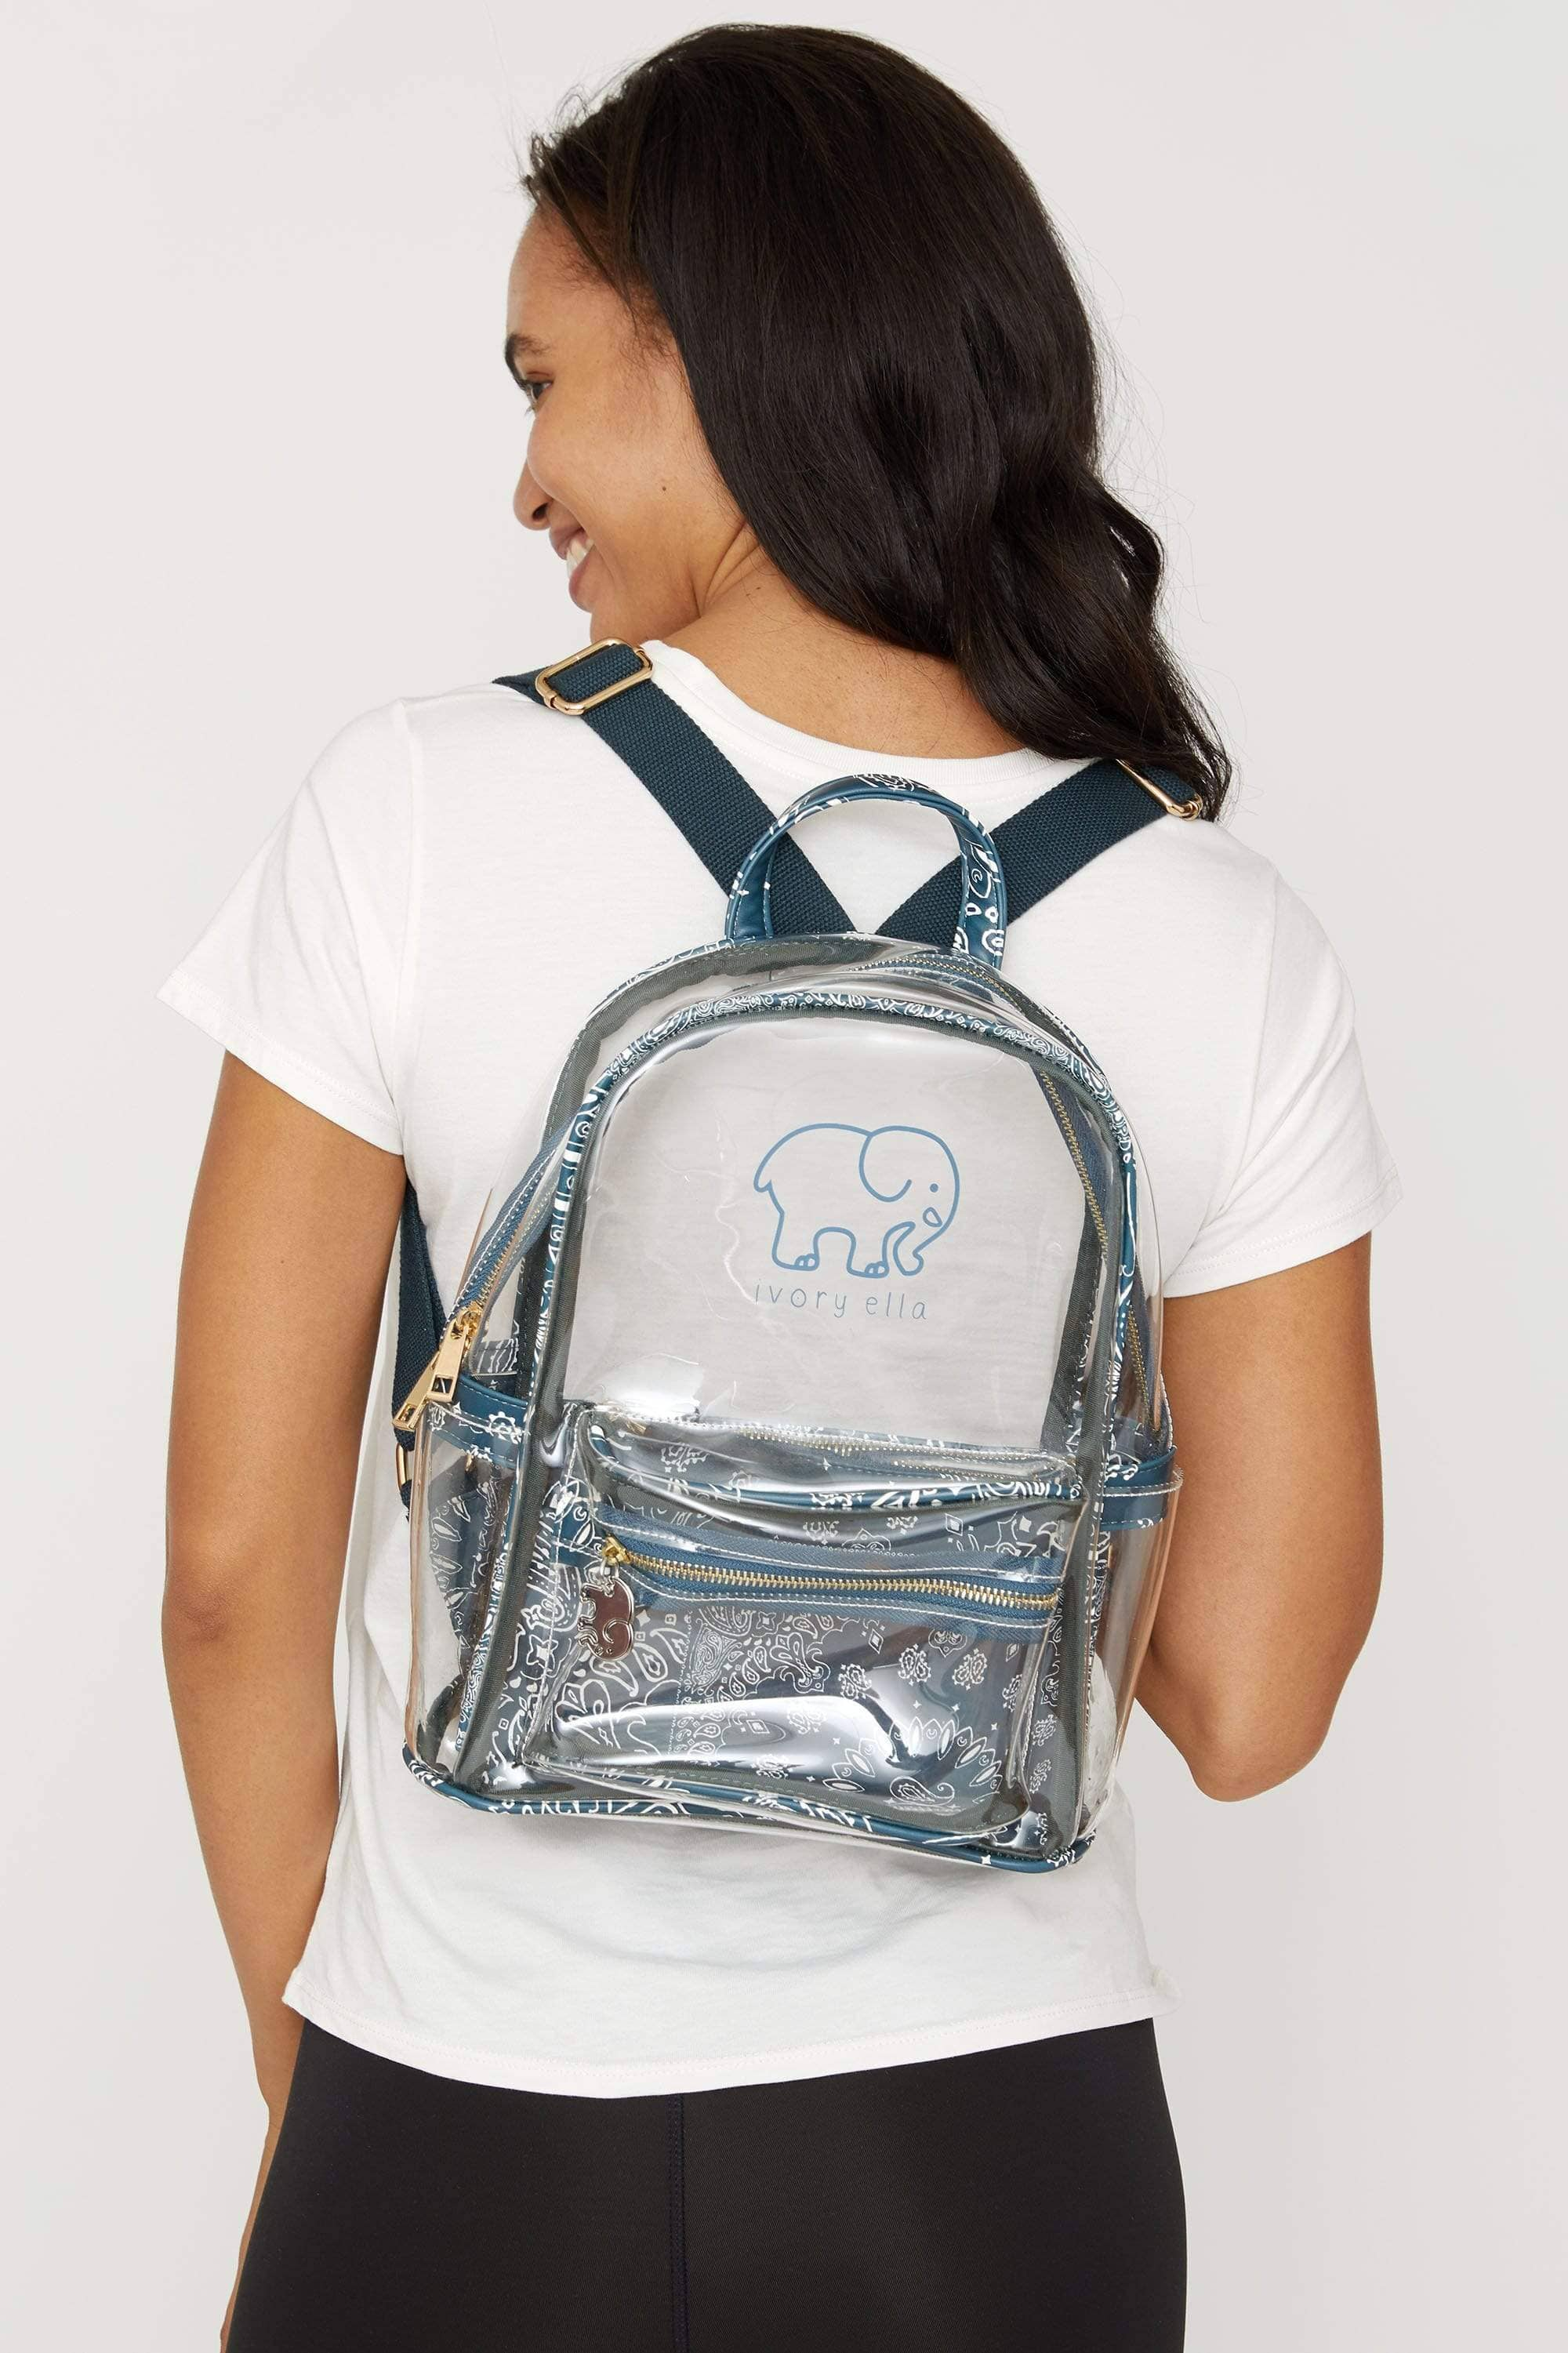 Stargazer Clearbody Mini Backpack - Ivory Ella - Accessories